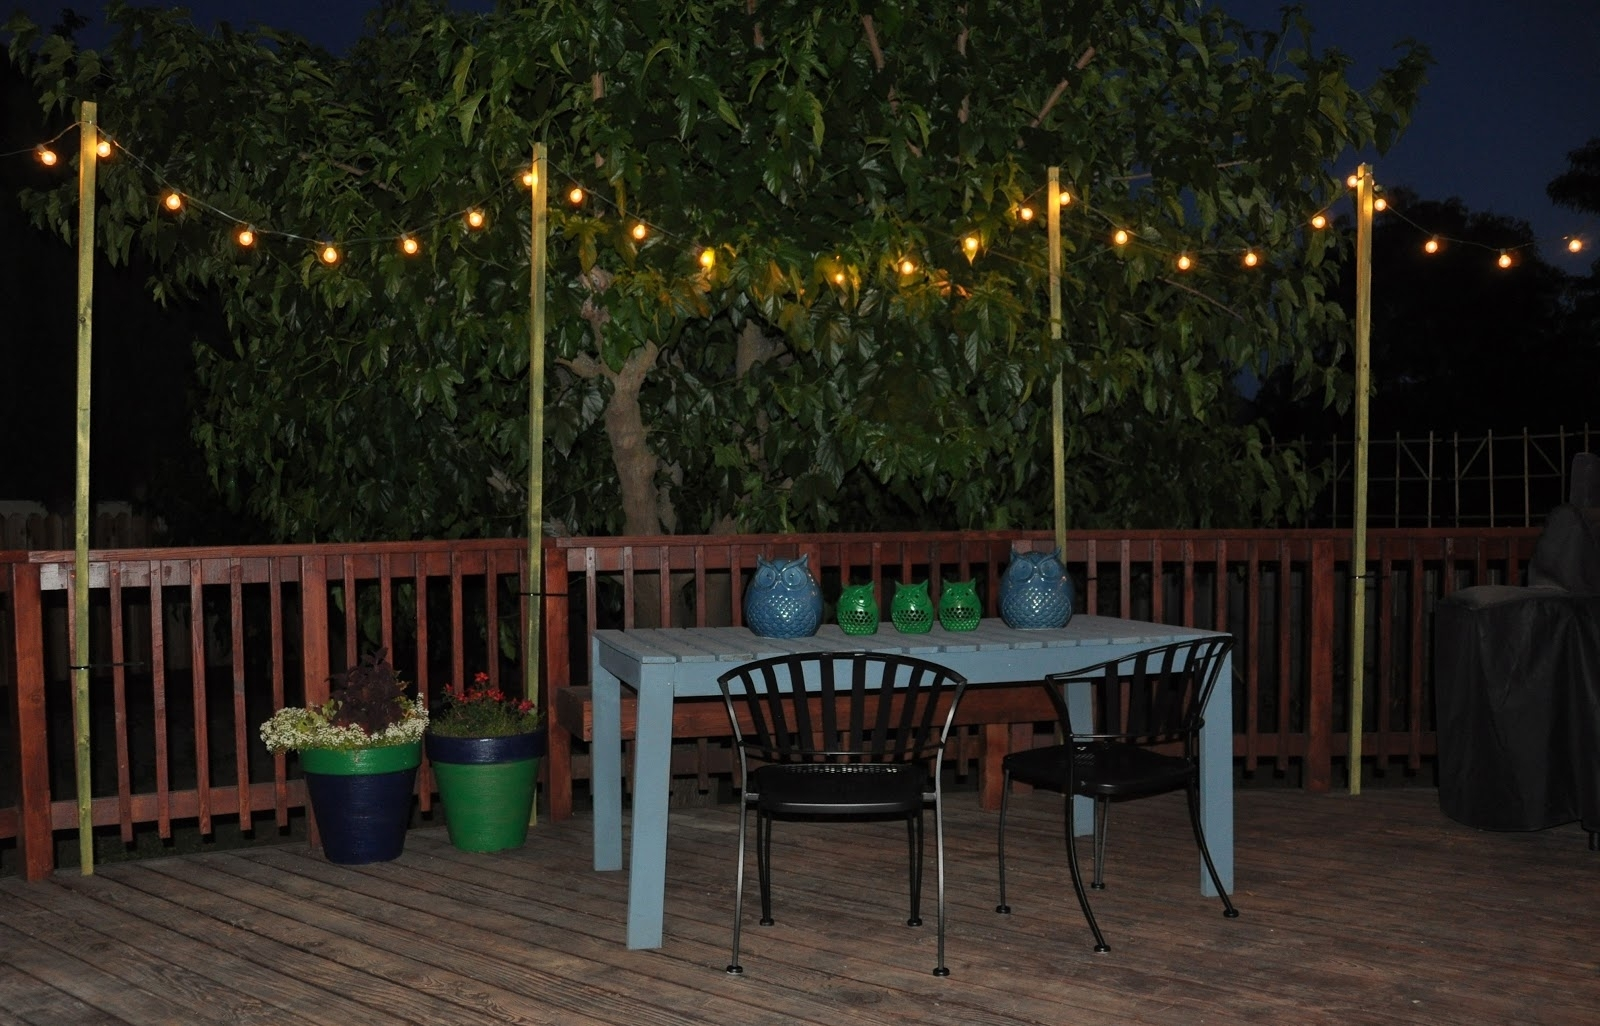 Inspiration about Glamorous Backyard String Lights Decorative Indoor Porch Led Hanging Pertaining To Hanging Outdoor Lights In Backyard (#13 of 15)